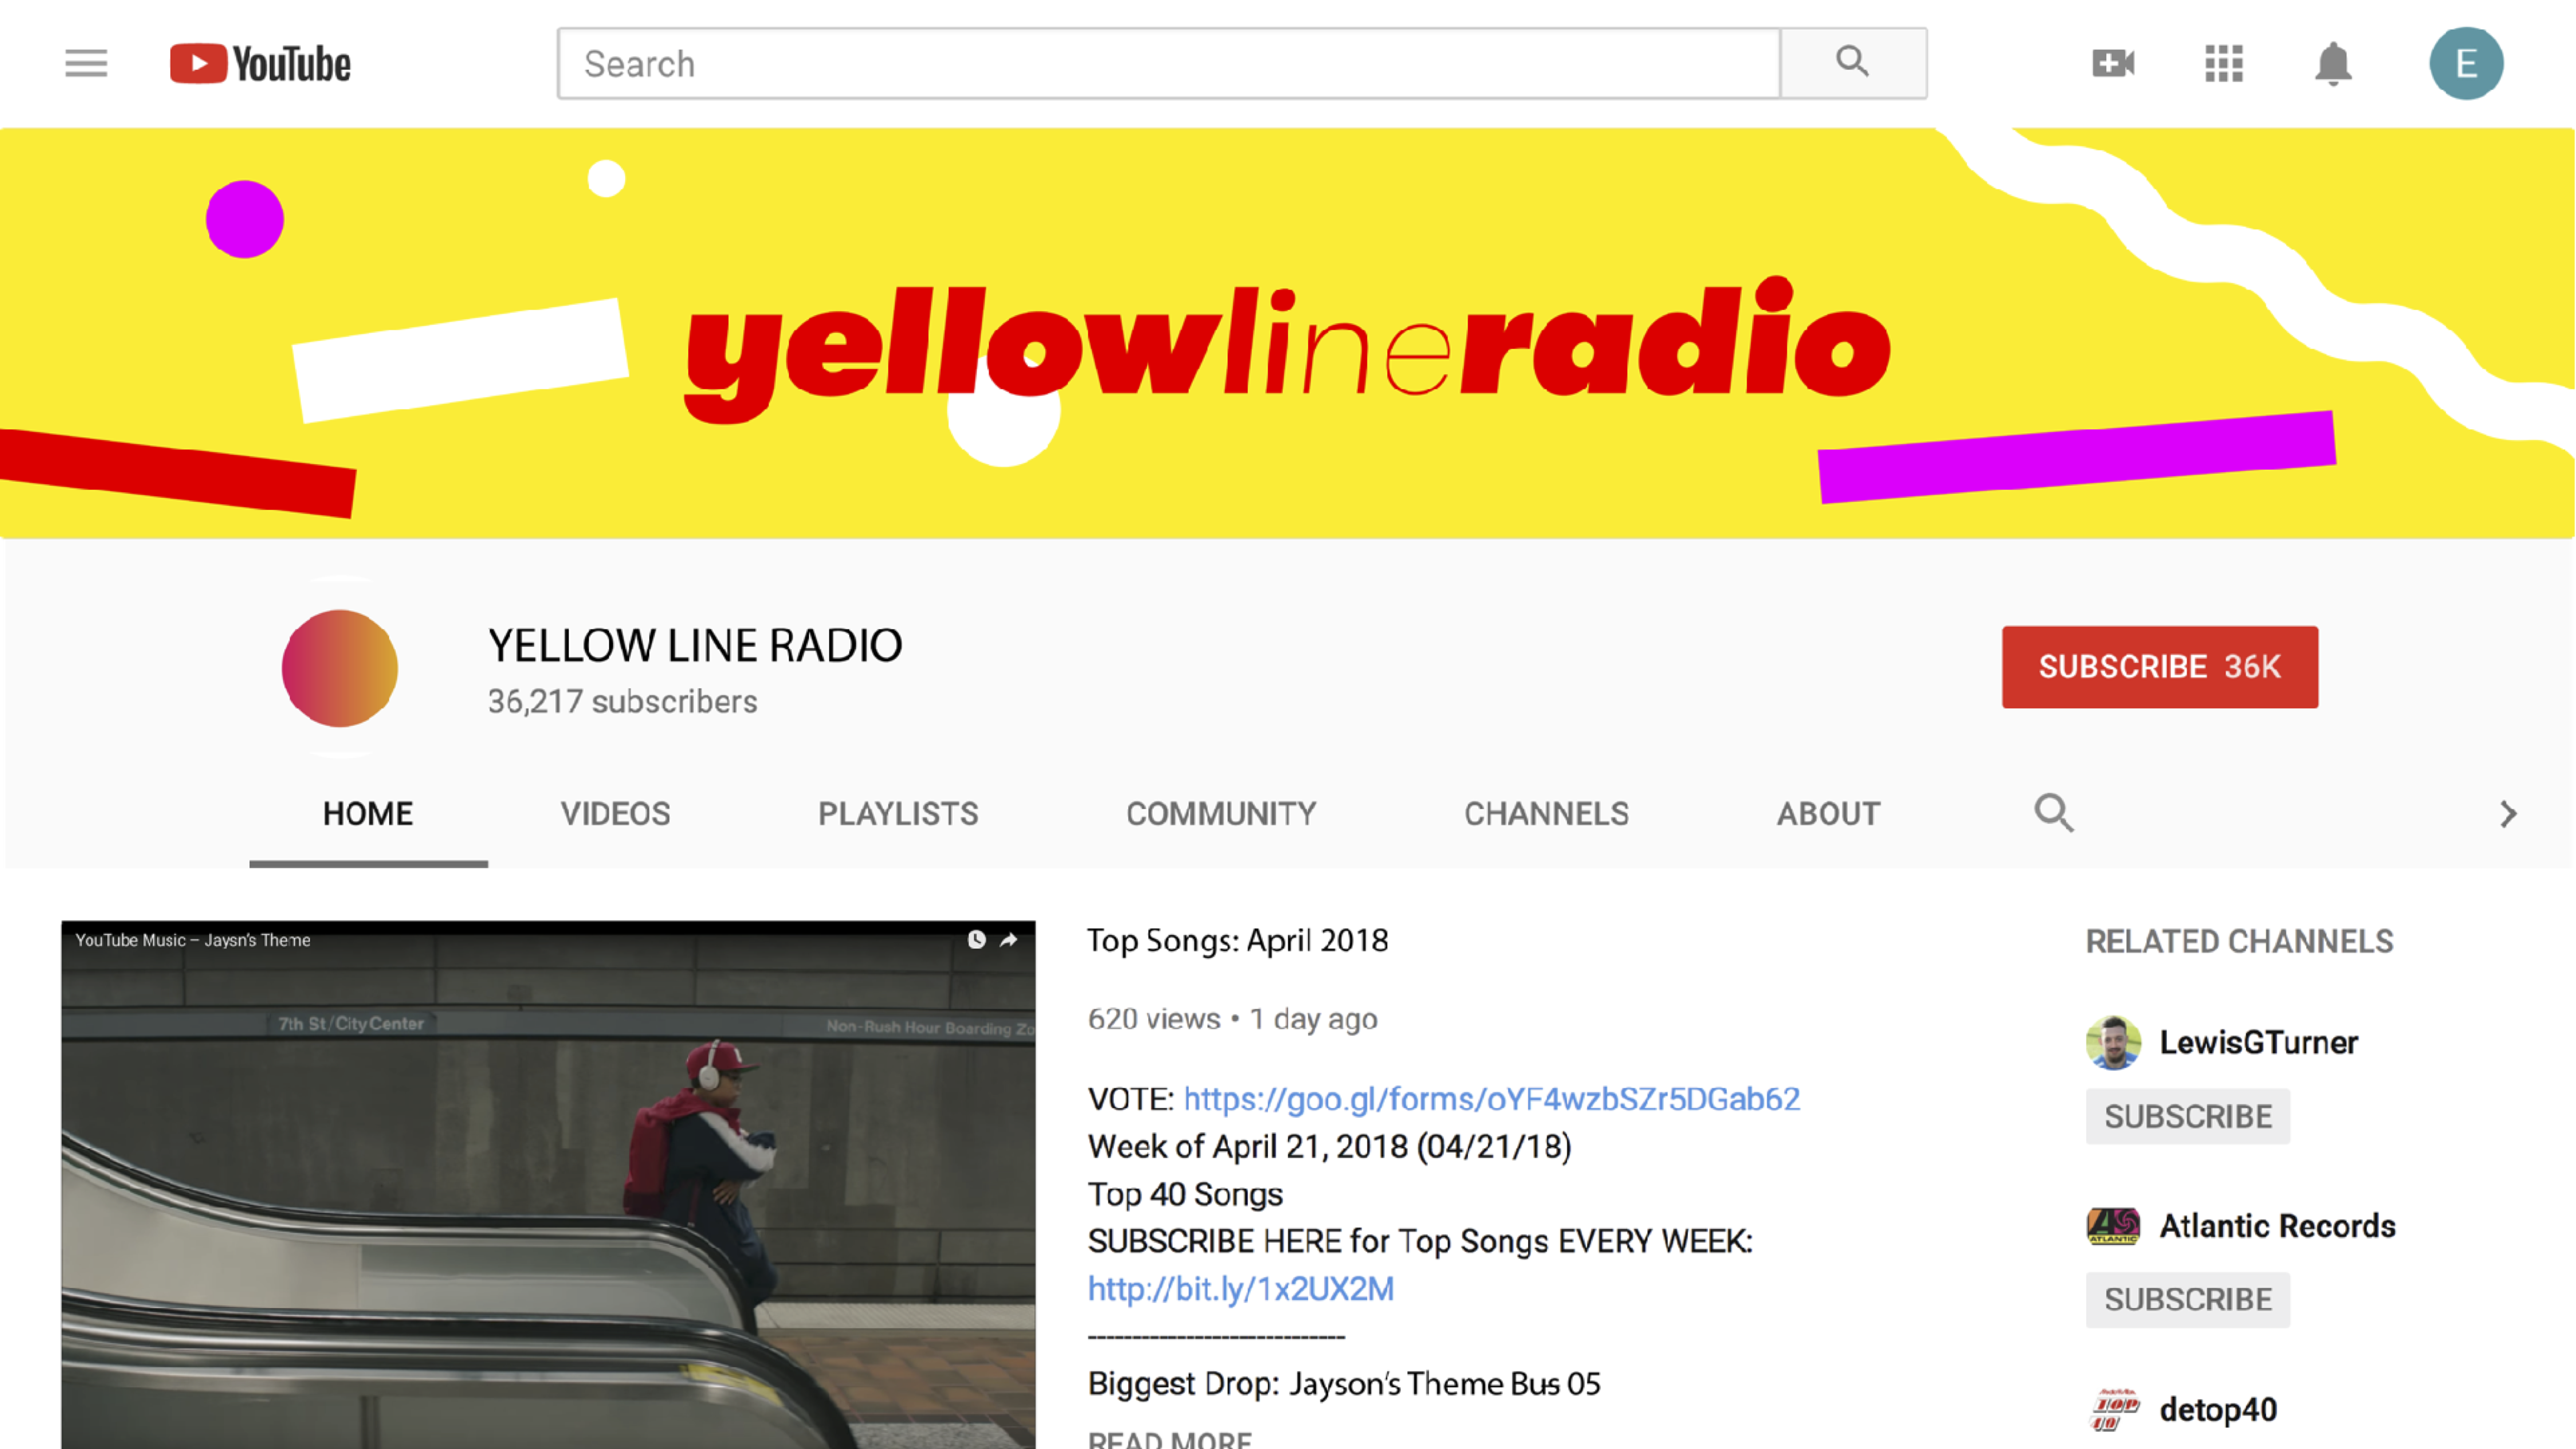 Yellow_line-radio-youtube-interface.png